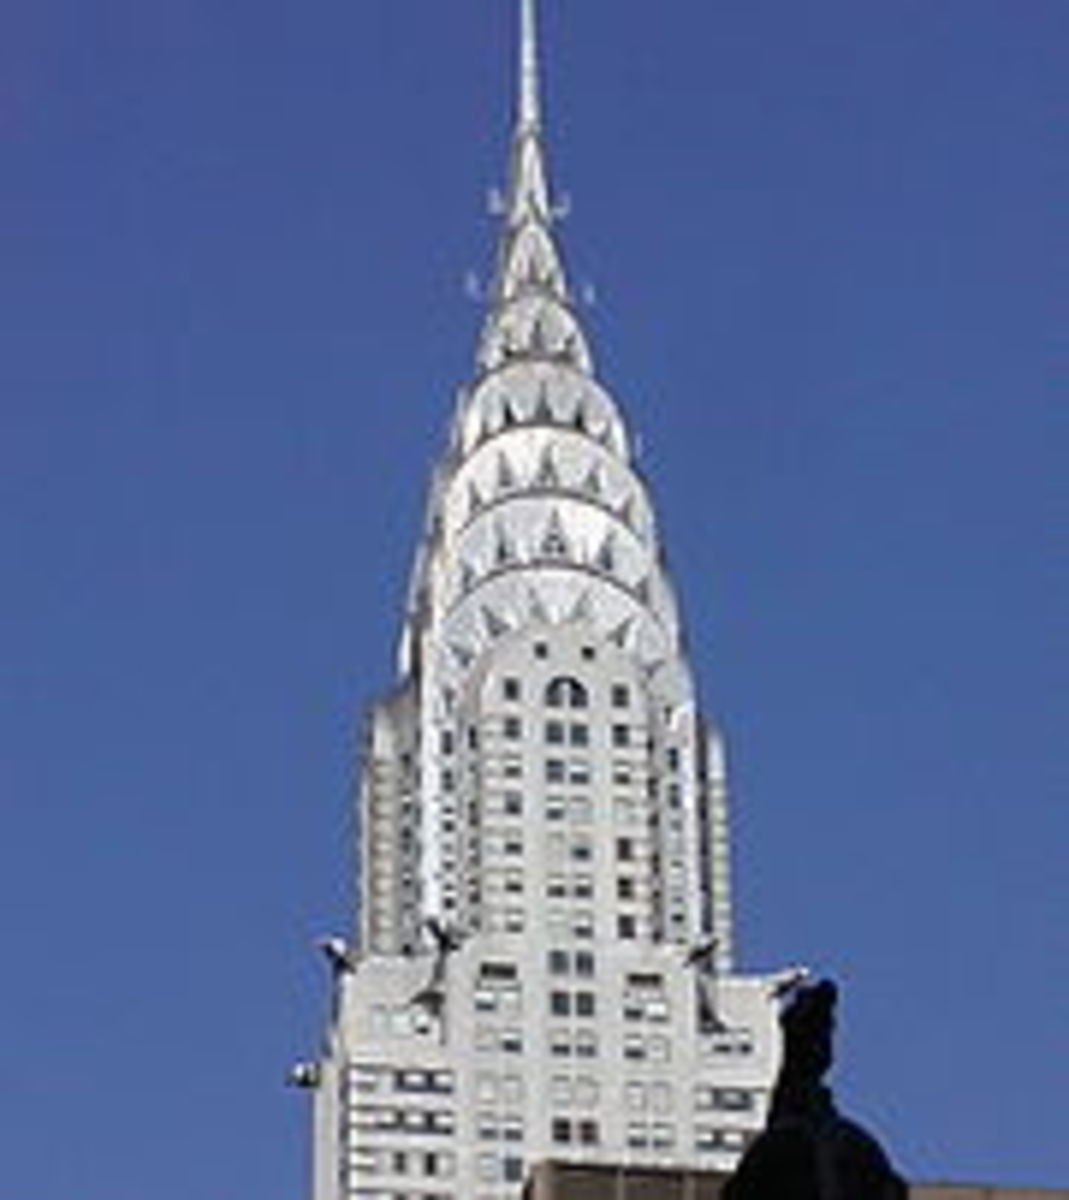 The spire of the Chrysler Building